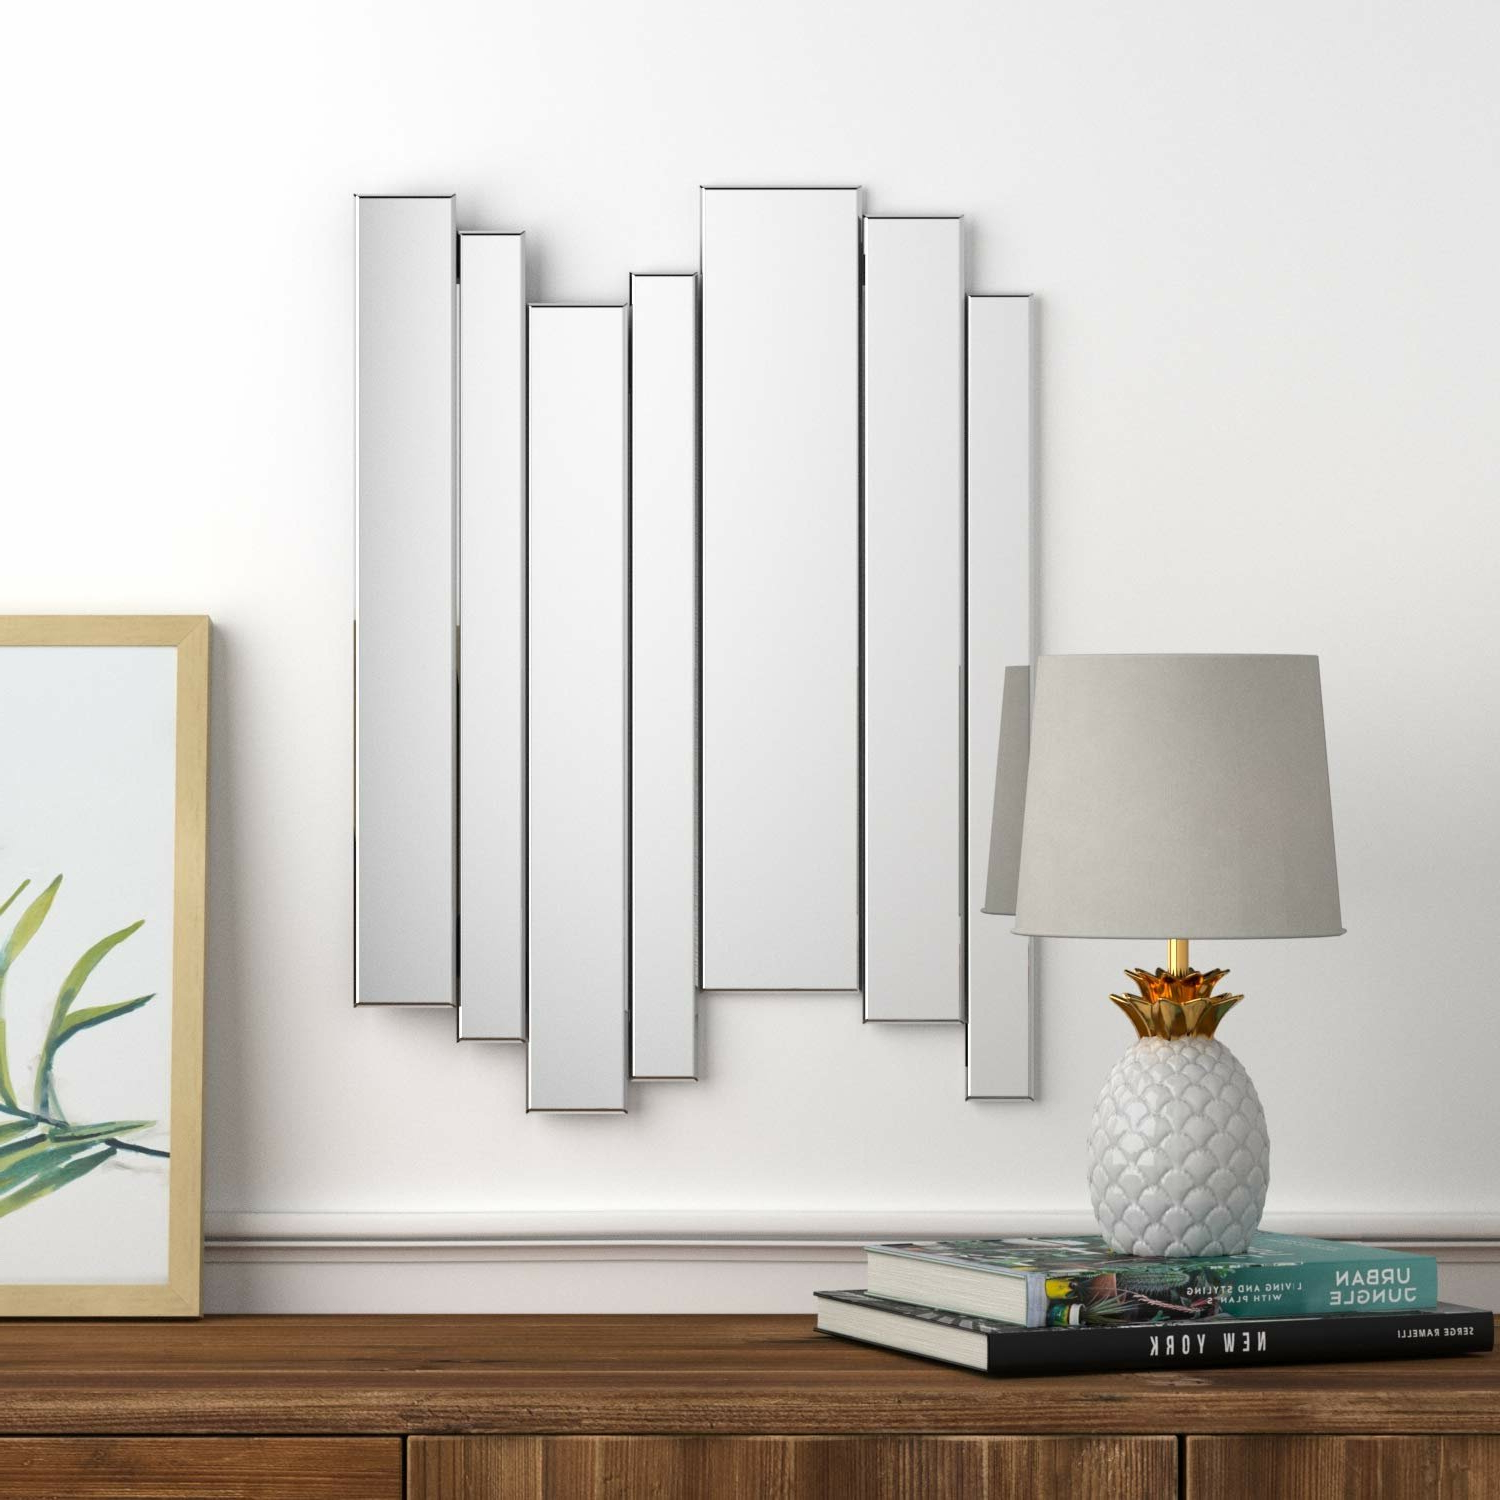 3 Piece Dima Hanging Modern & Contemporary Mirror Sets Throughout 2019 7 Piece Strip Modern Frameless Mirror Set (View 6 of 20)